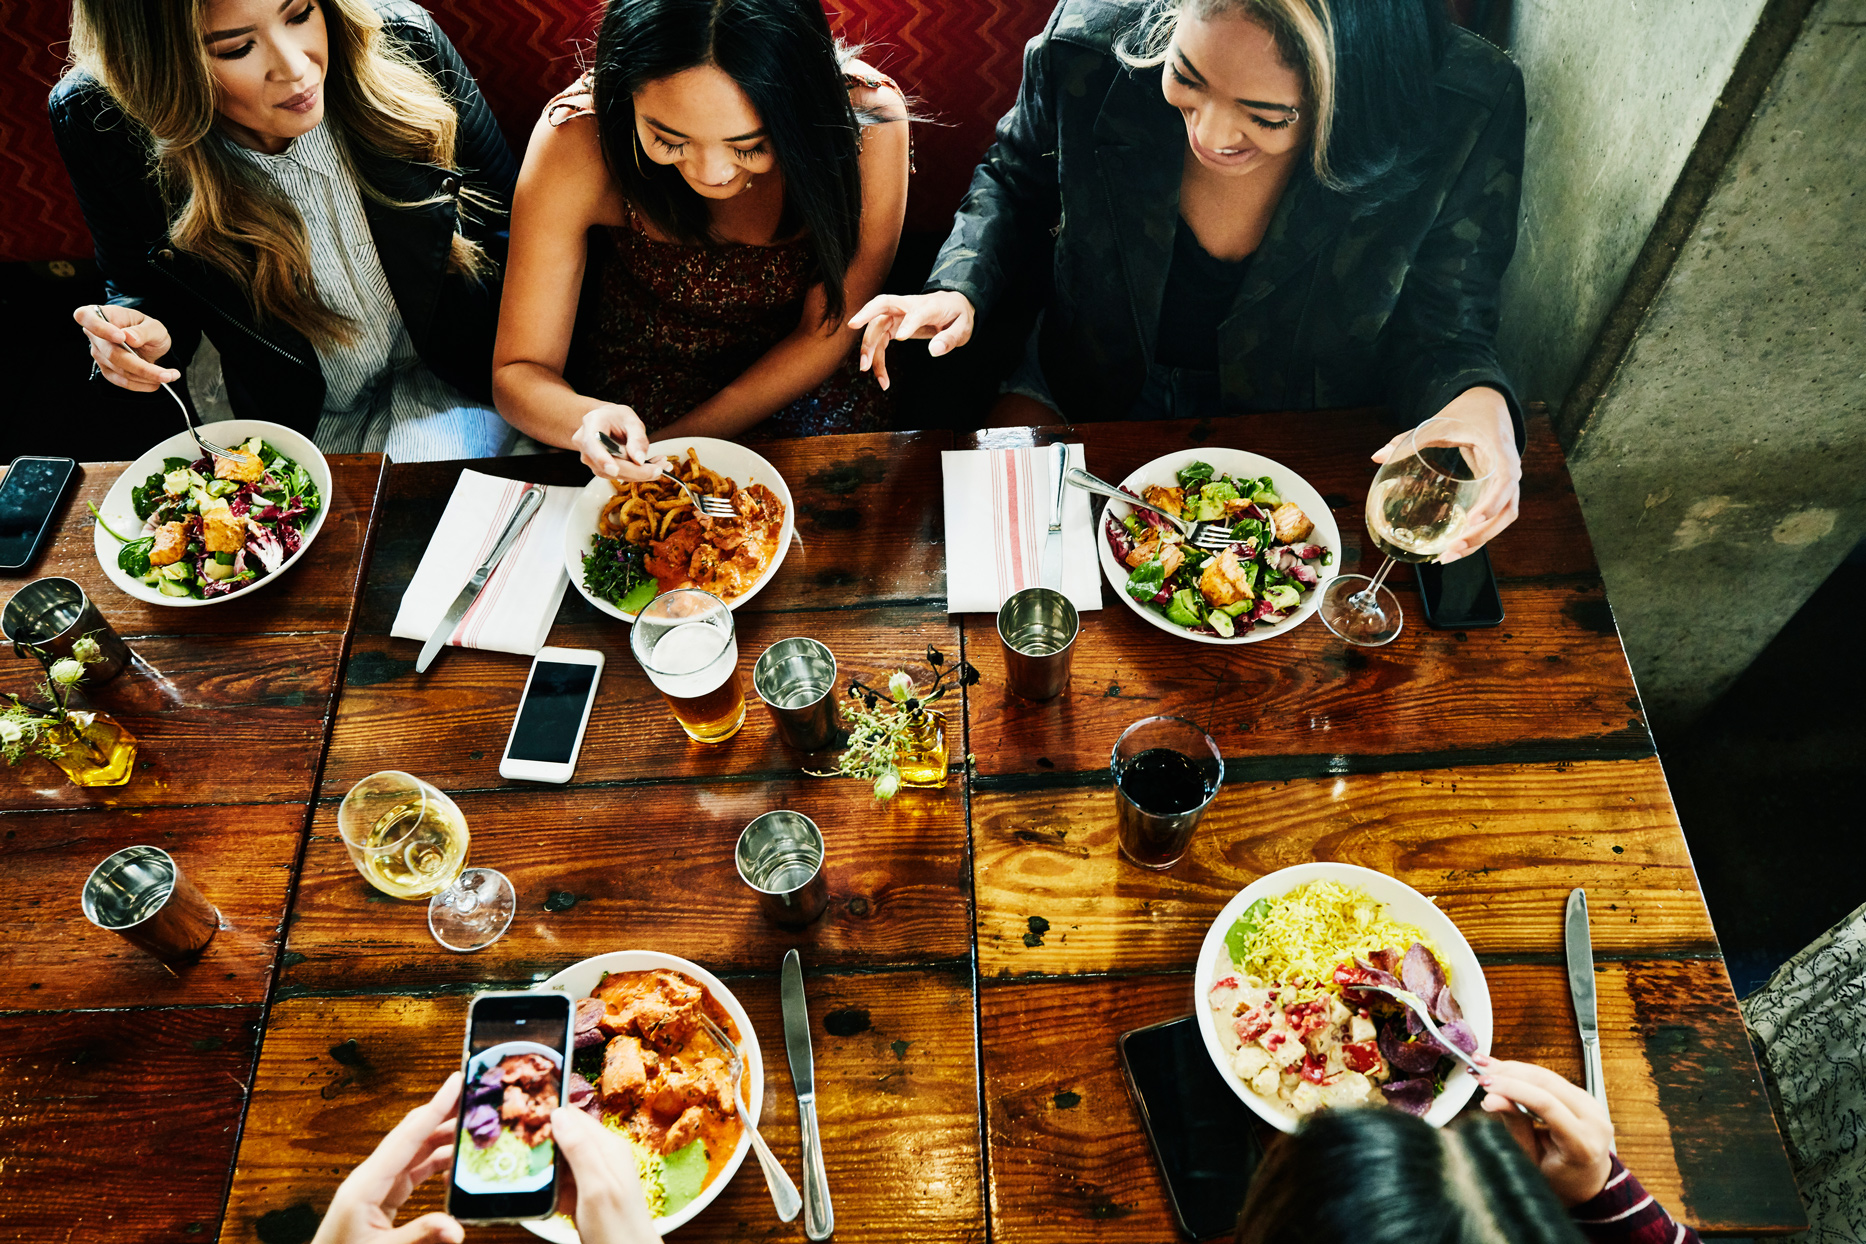 How have restaurant guests adapted to the new dine-out experience?